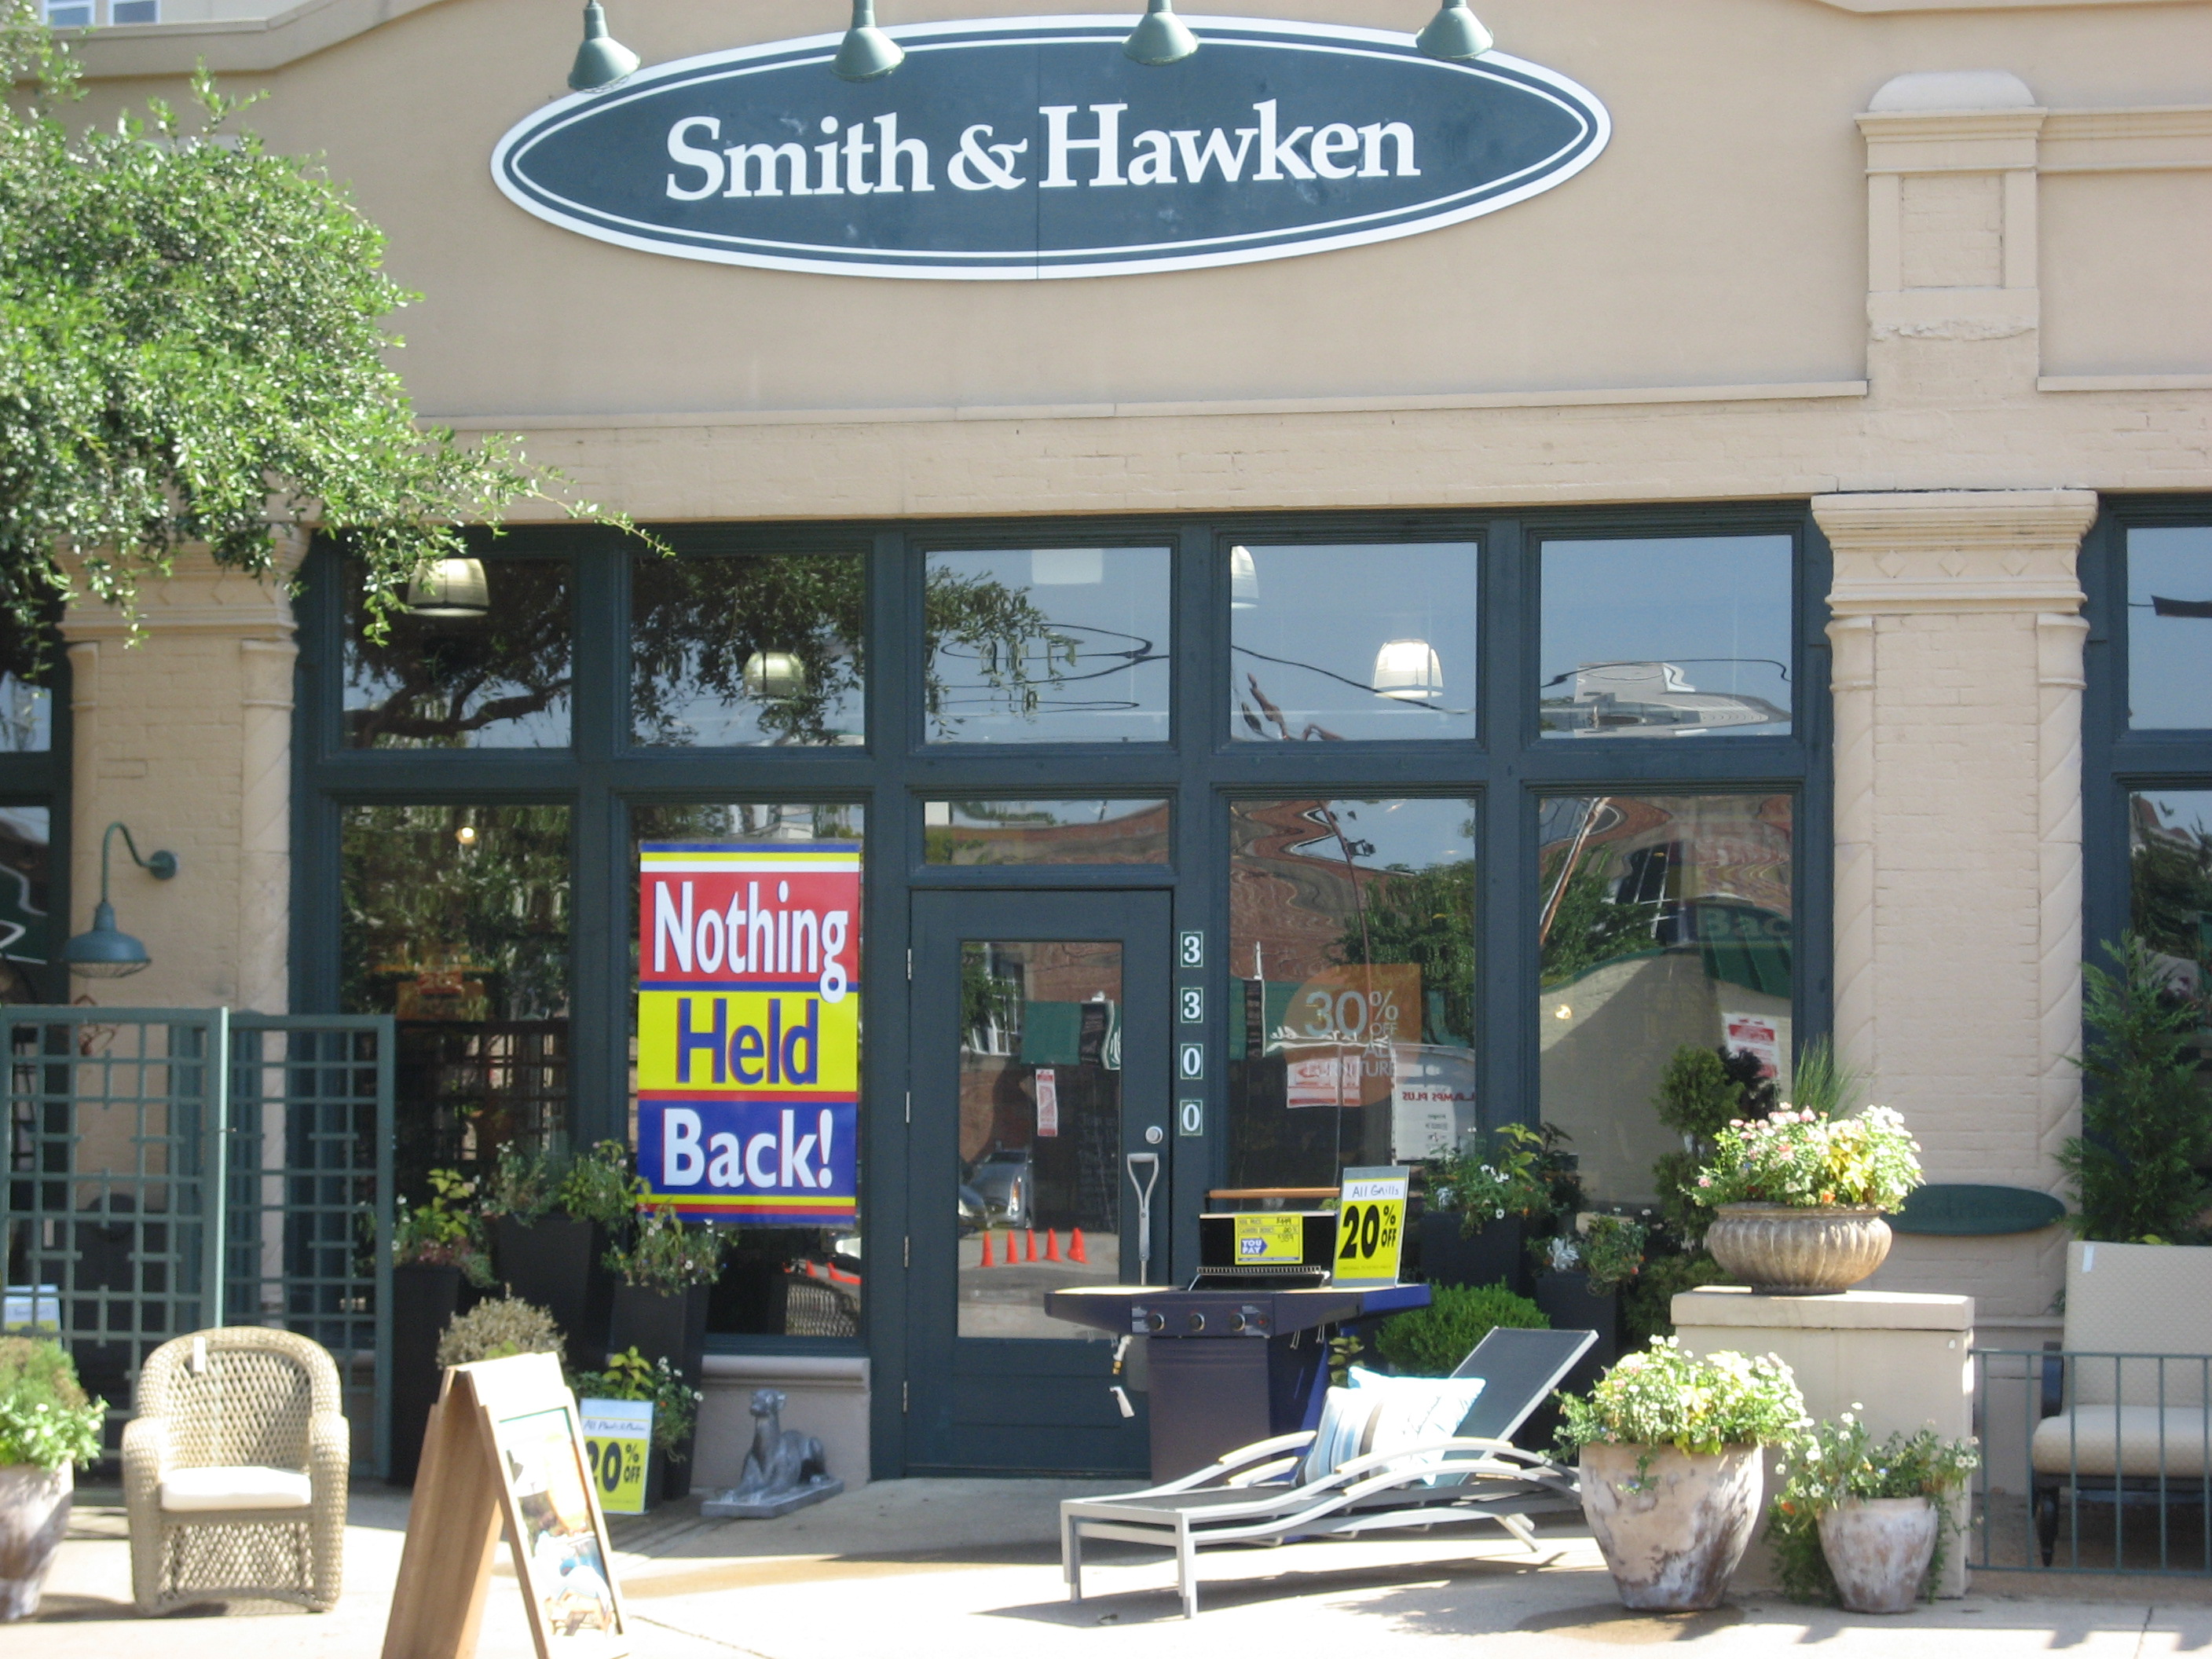 Smith & Hawken Going Belly Up - D Magazine